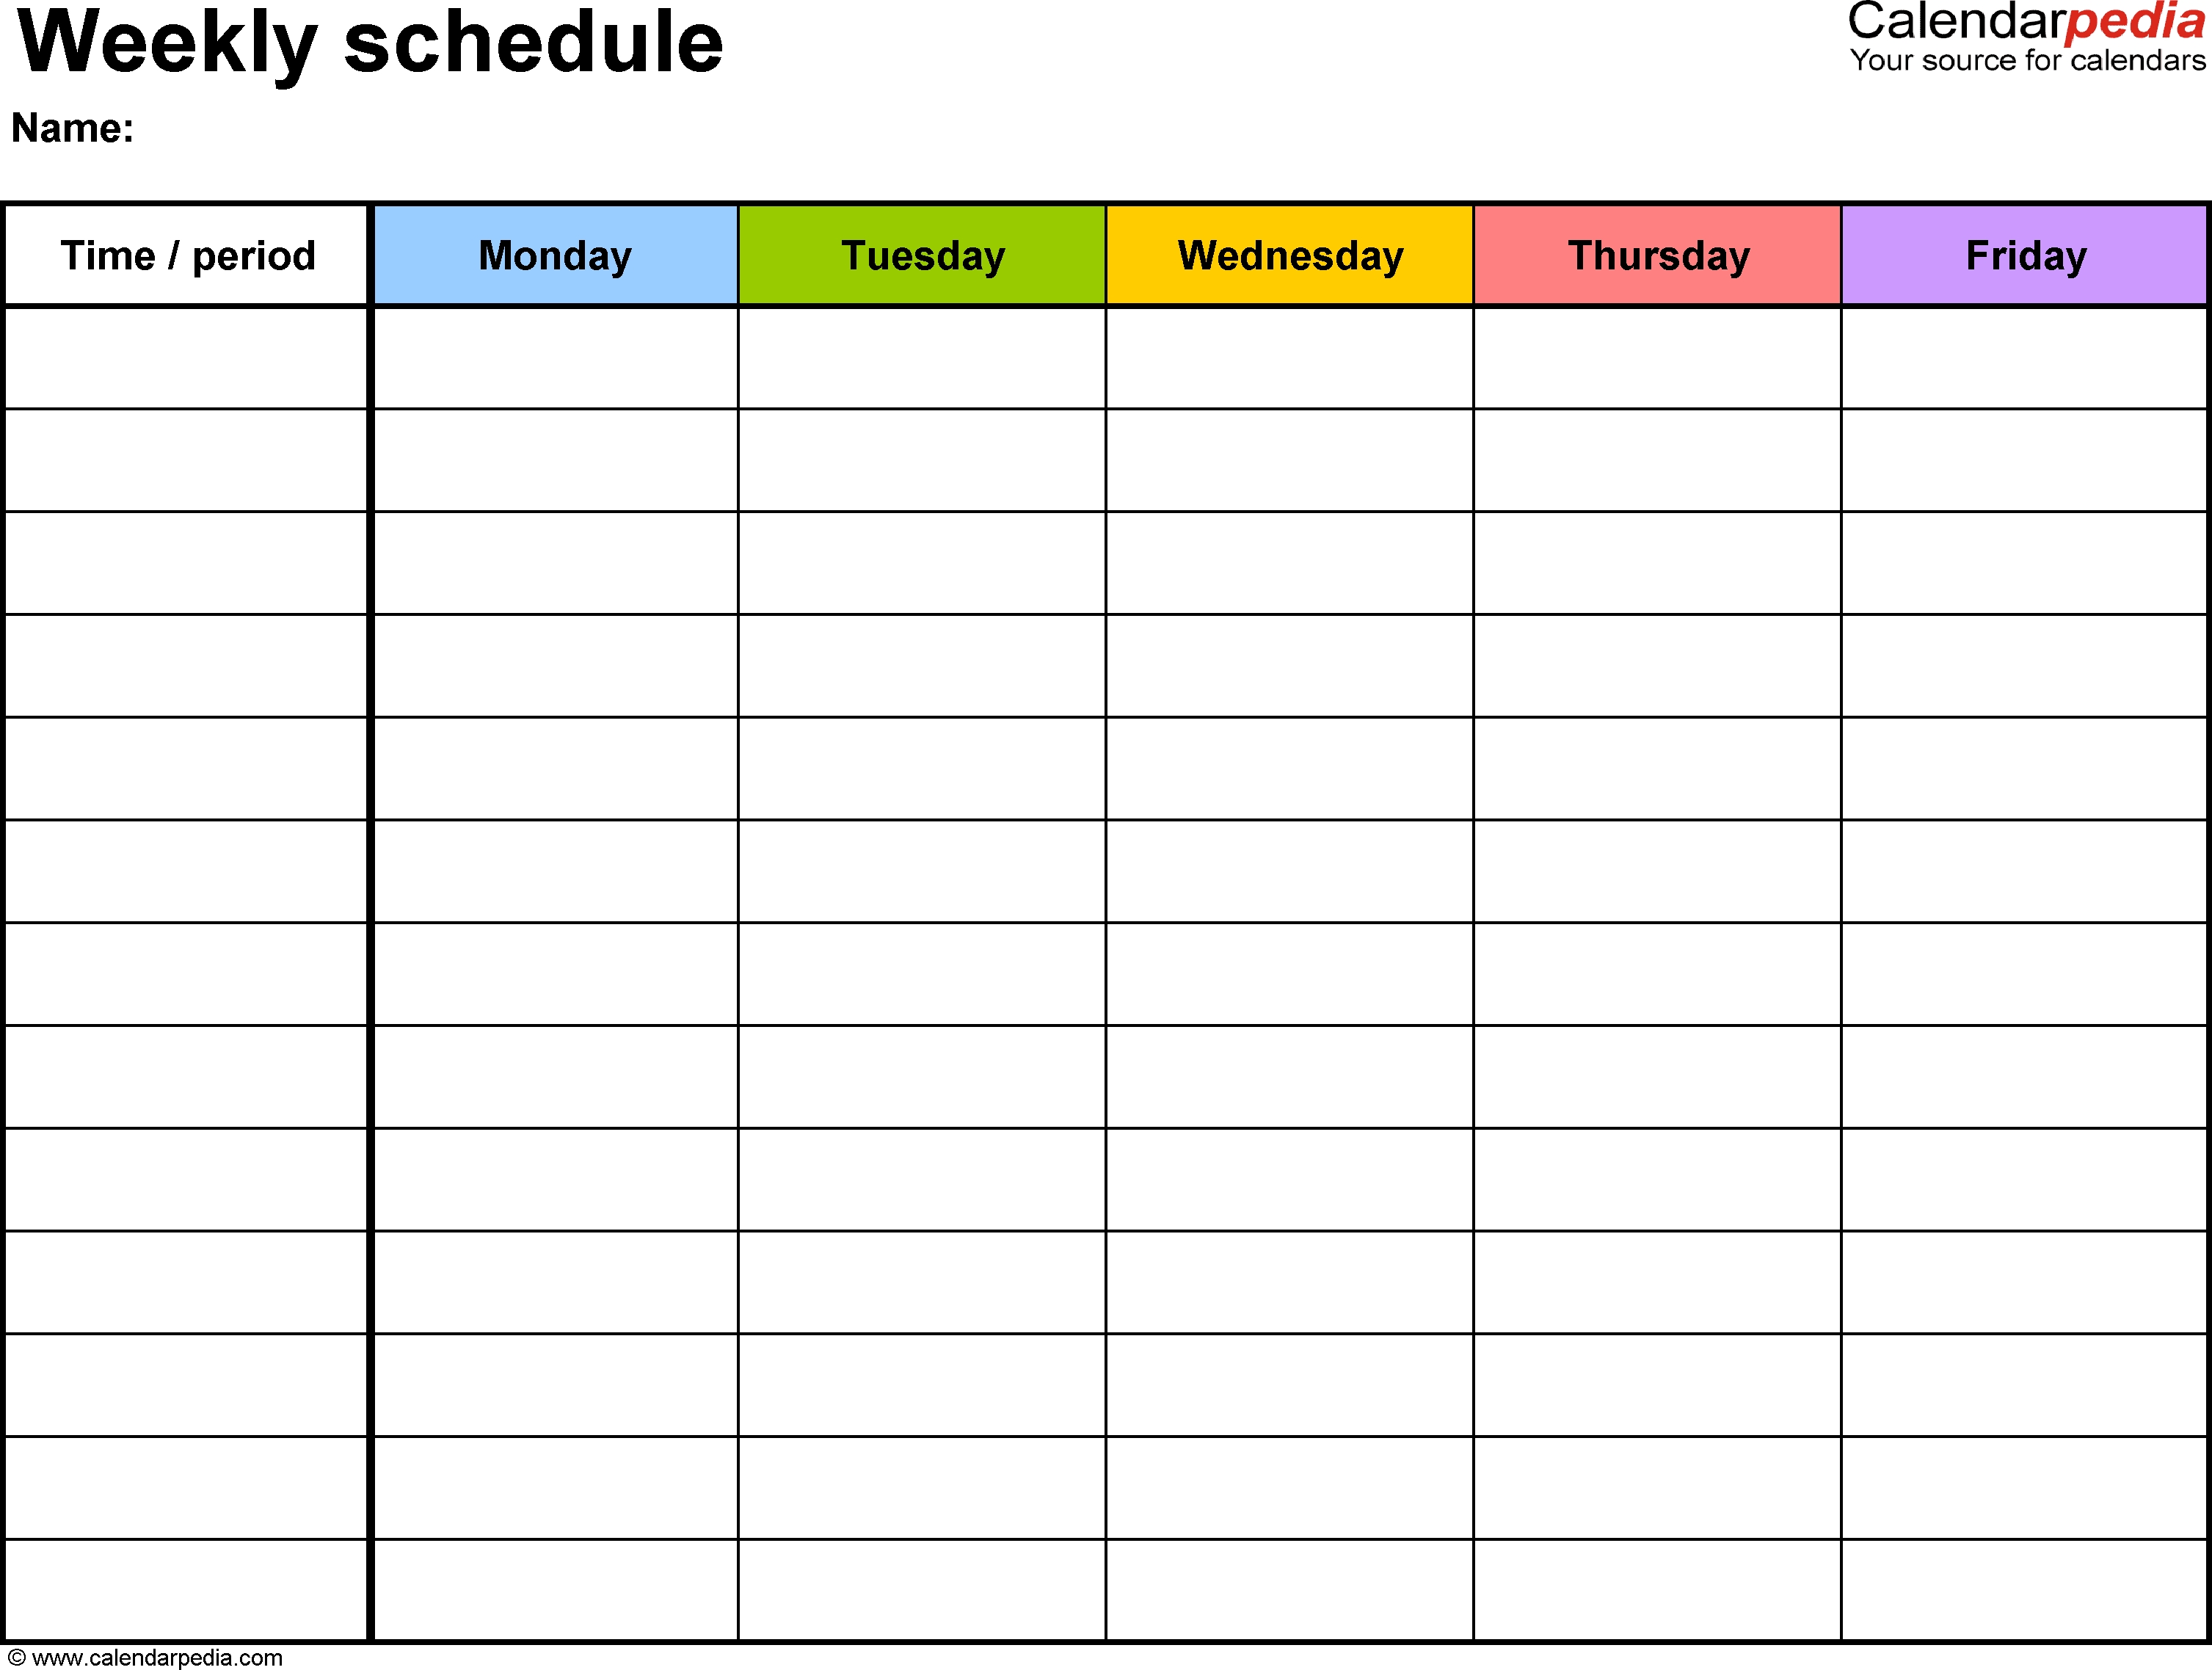 Free Weekly Schedule Templates For Word - 18 Templates for Calendar Monday Through Friday Schedule